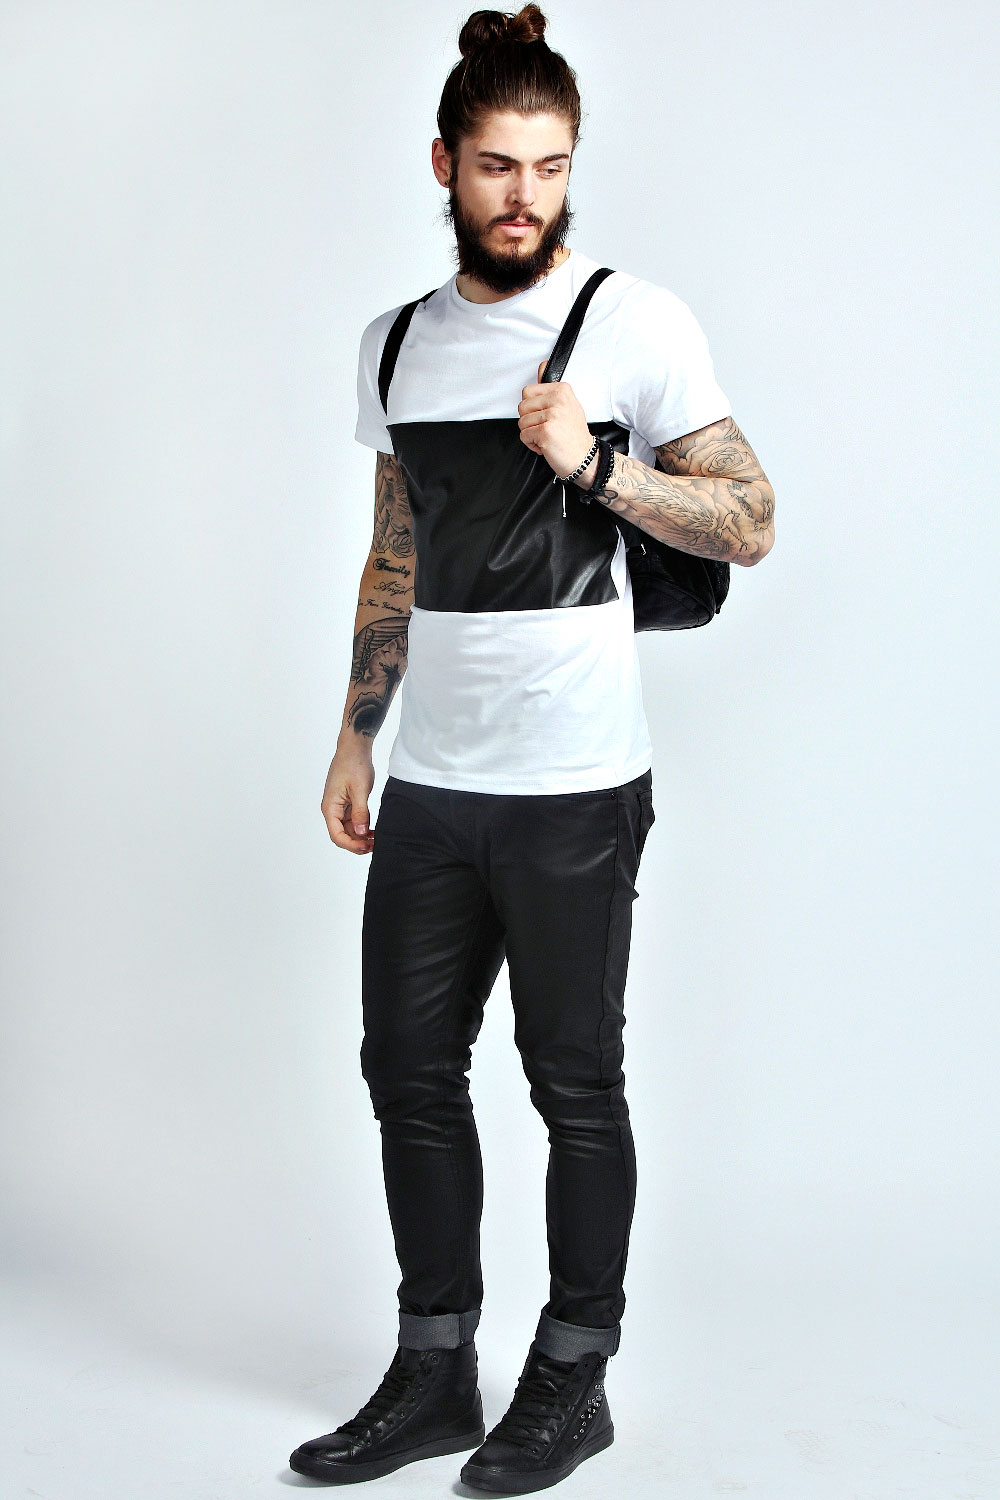 images of high fashion male models spacehero